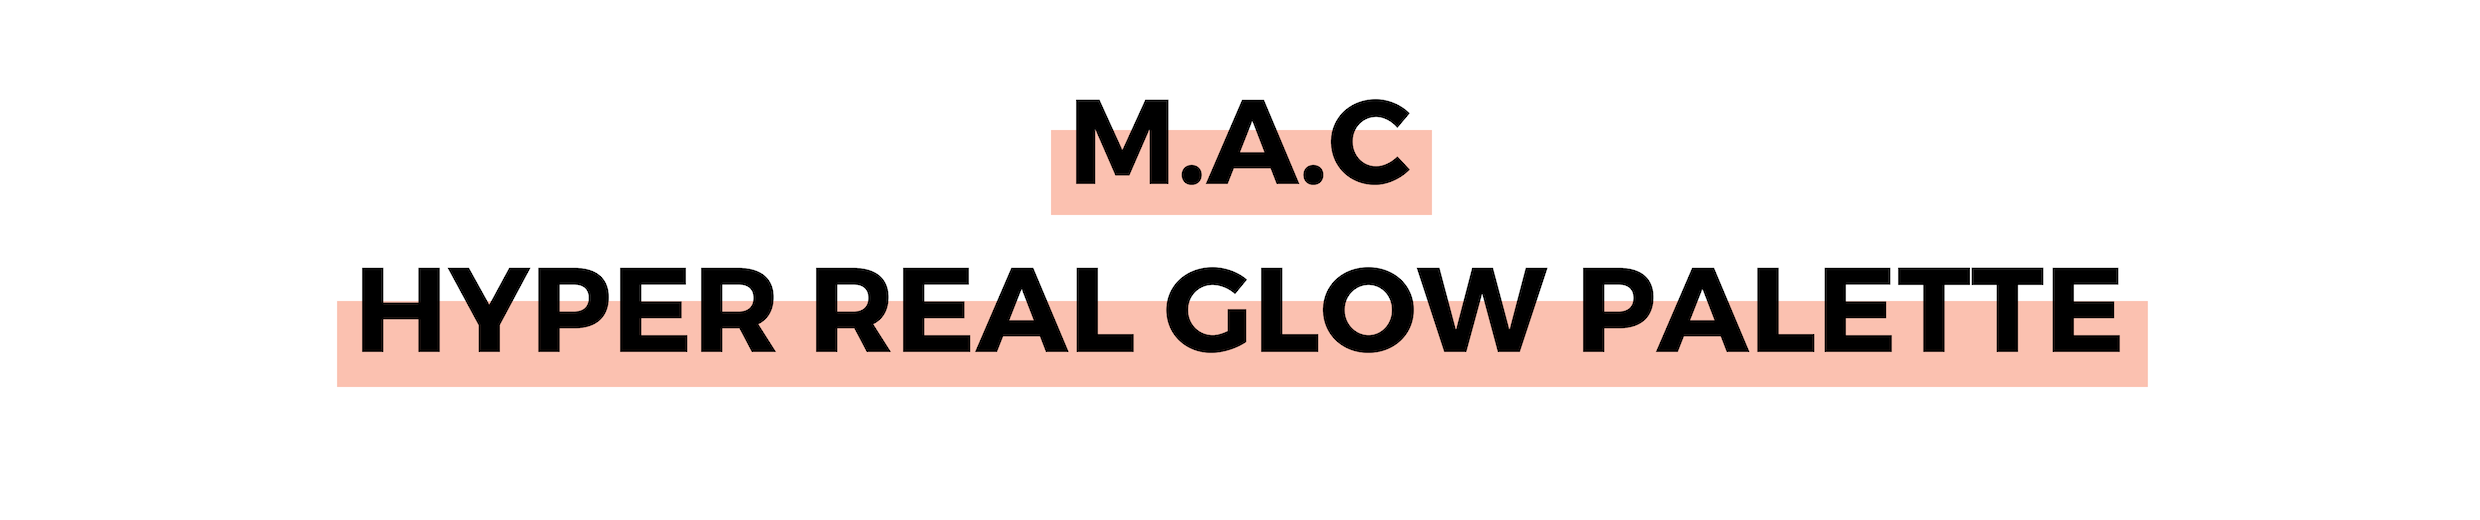 M.A.C HYPER REAL GLOW PALETTE.png